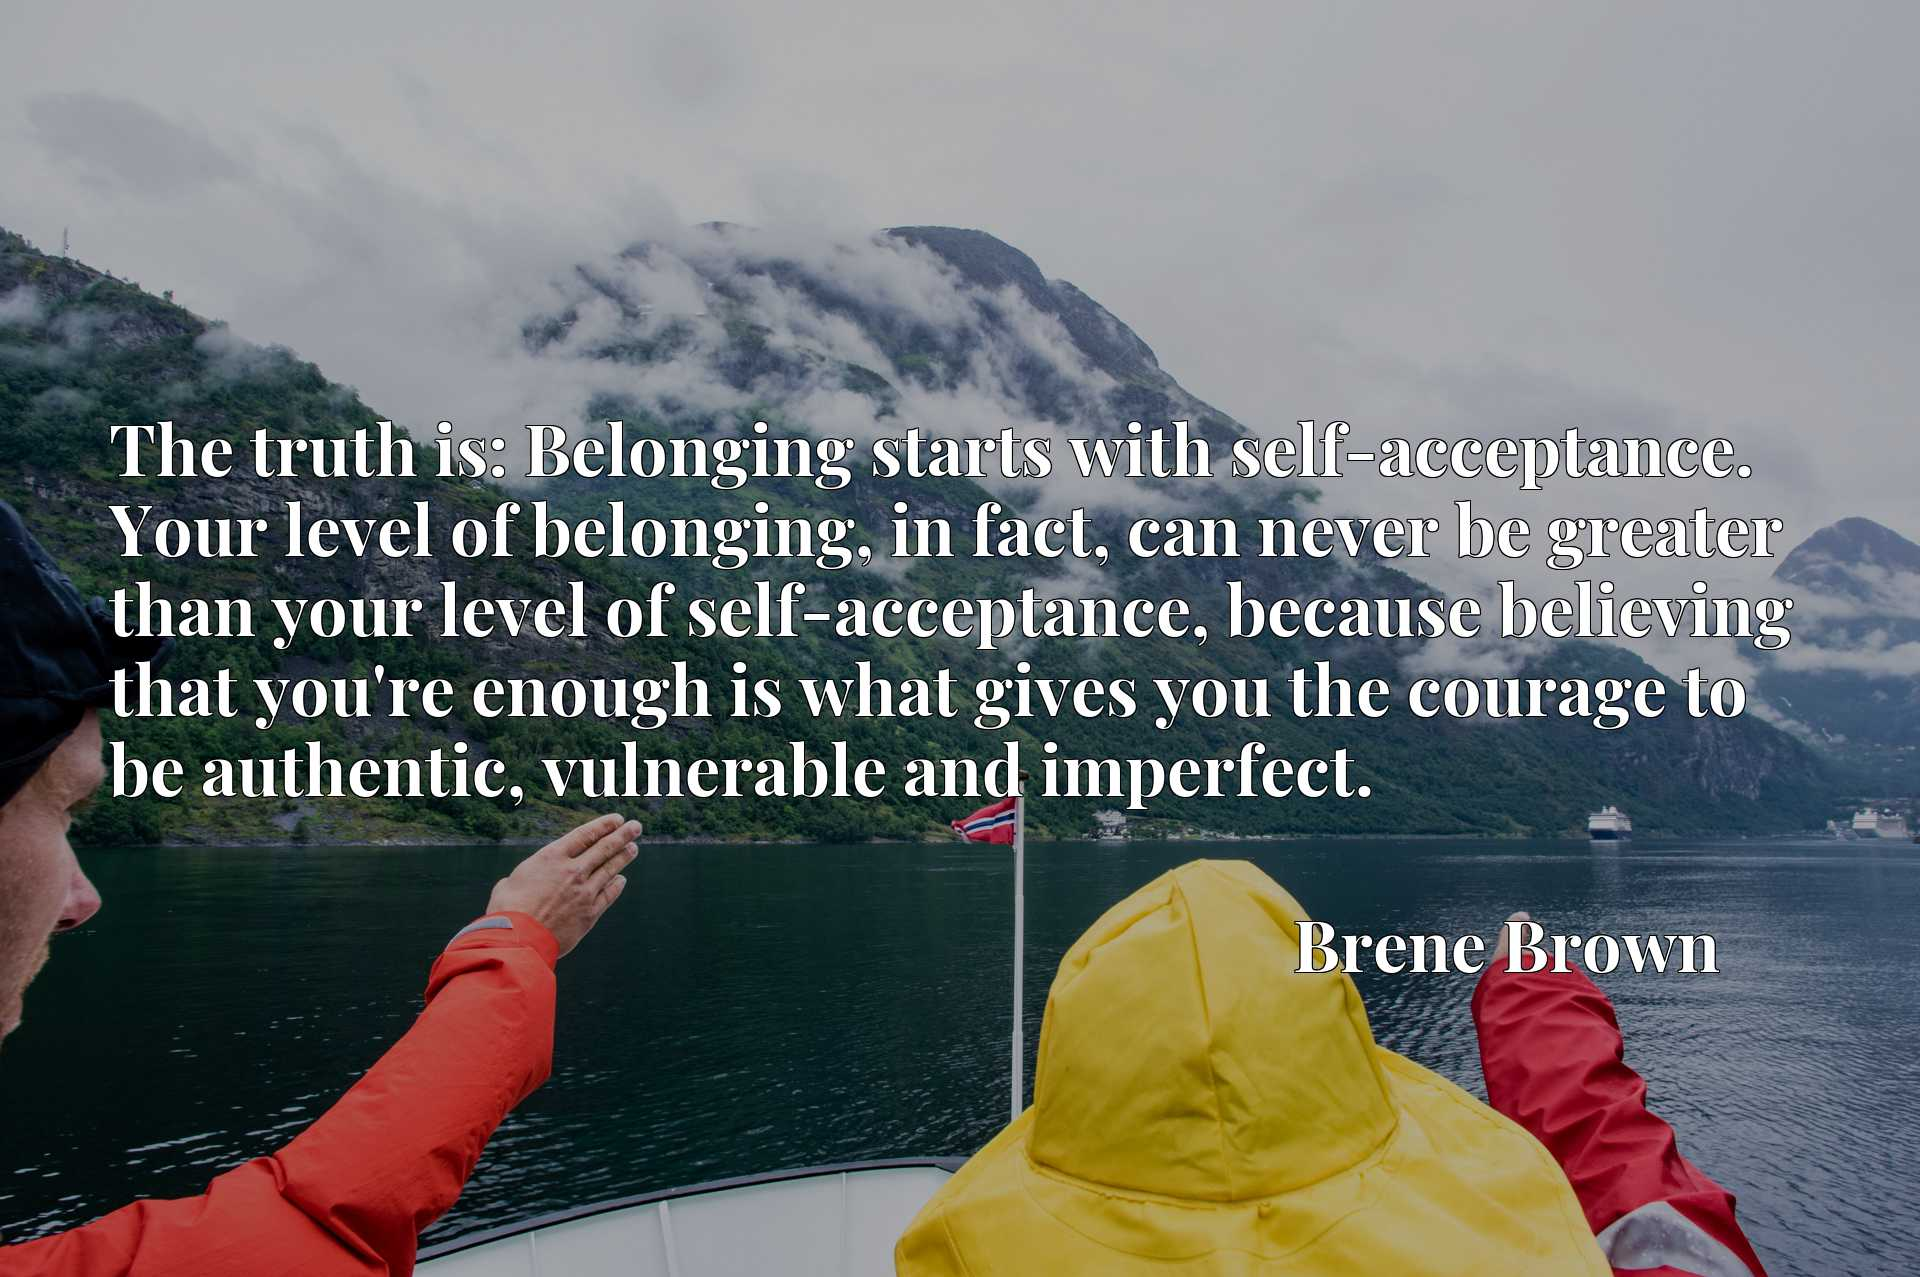 The truth is: Belonging starts with self-acceptance. Your level of belonging, in fact, can never be greater than your level of self-acceptance, because believing that you're enough is what gives you the courage to be authentic, vulnerable and imperfect.